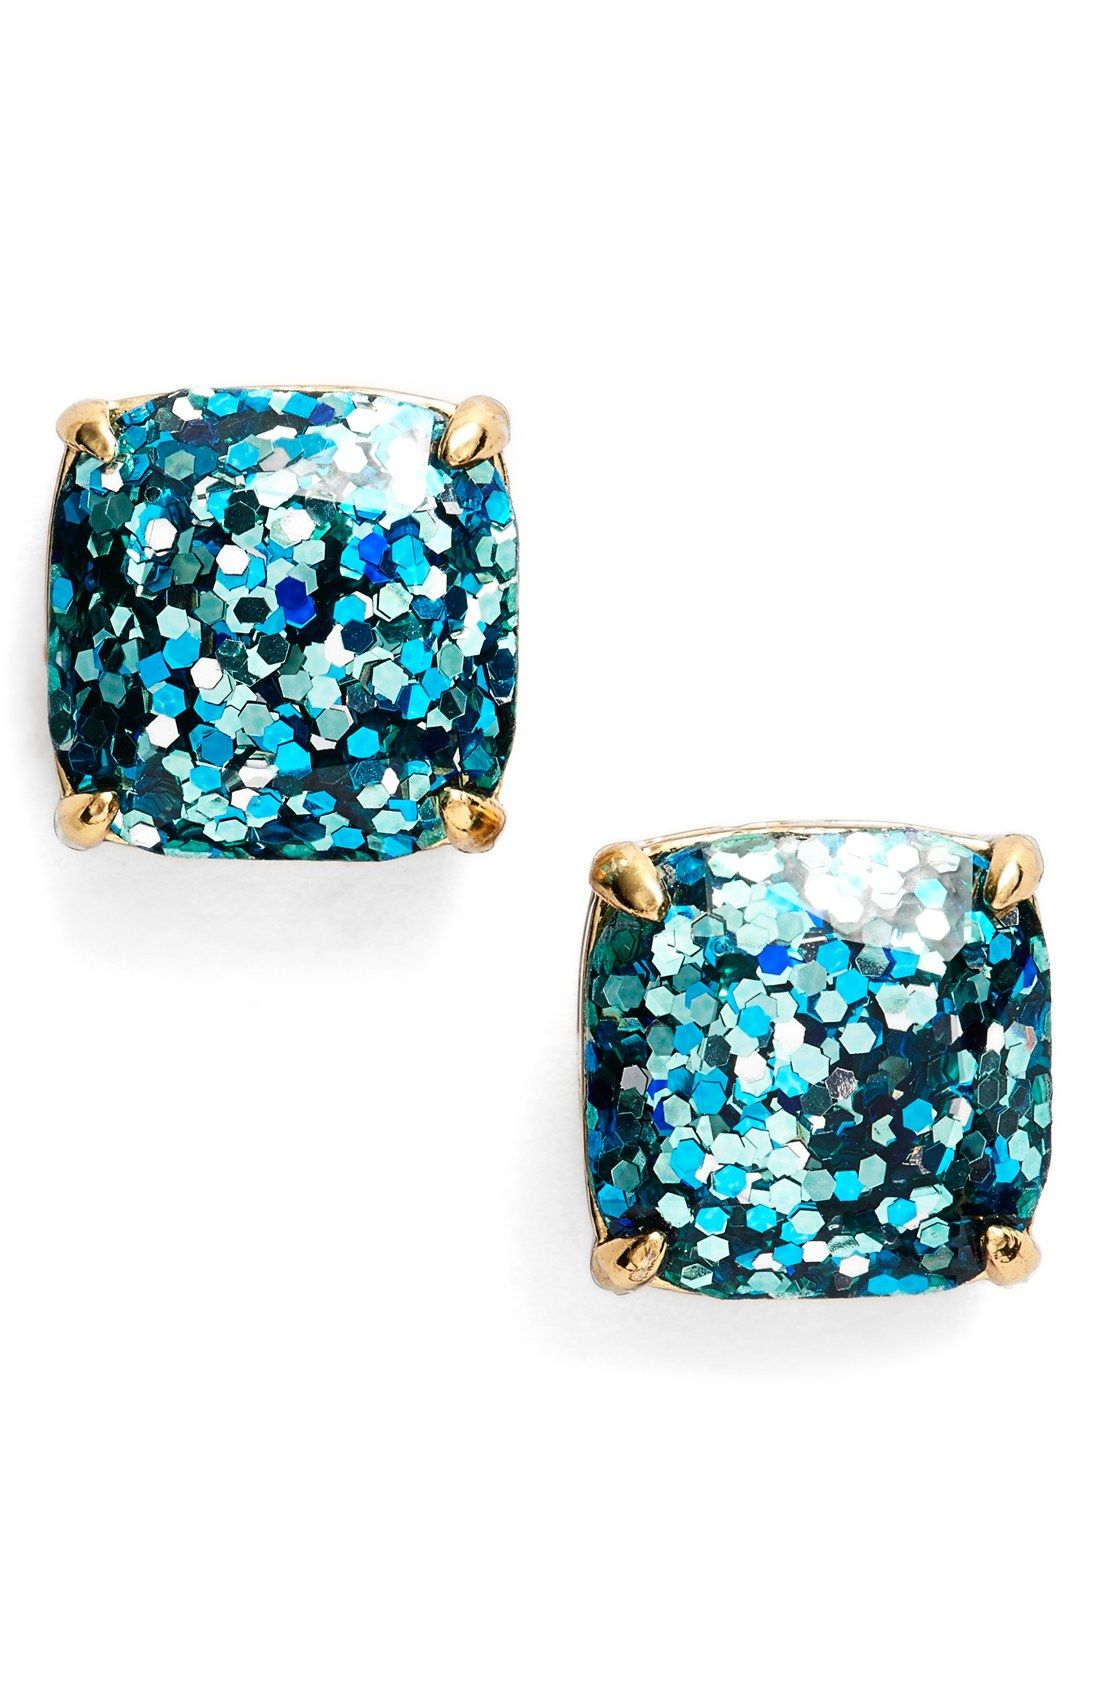 Polishing off the party look with these sparkling Kate Spade turquoise glitter earrings